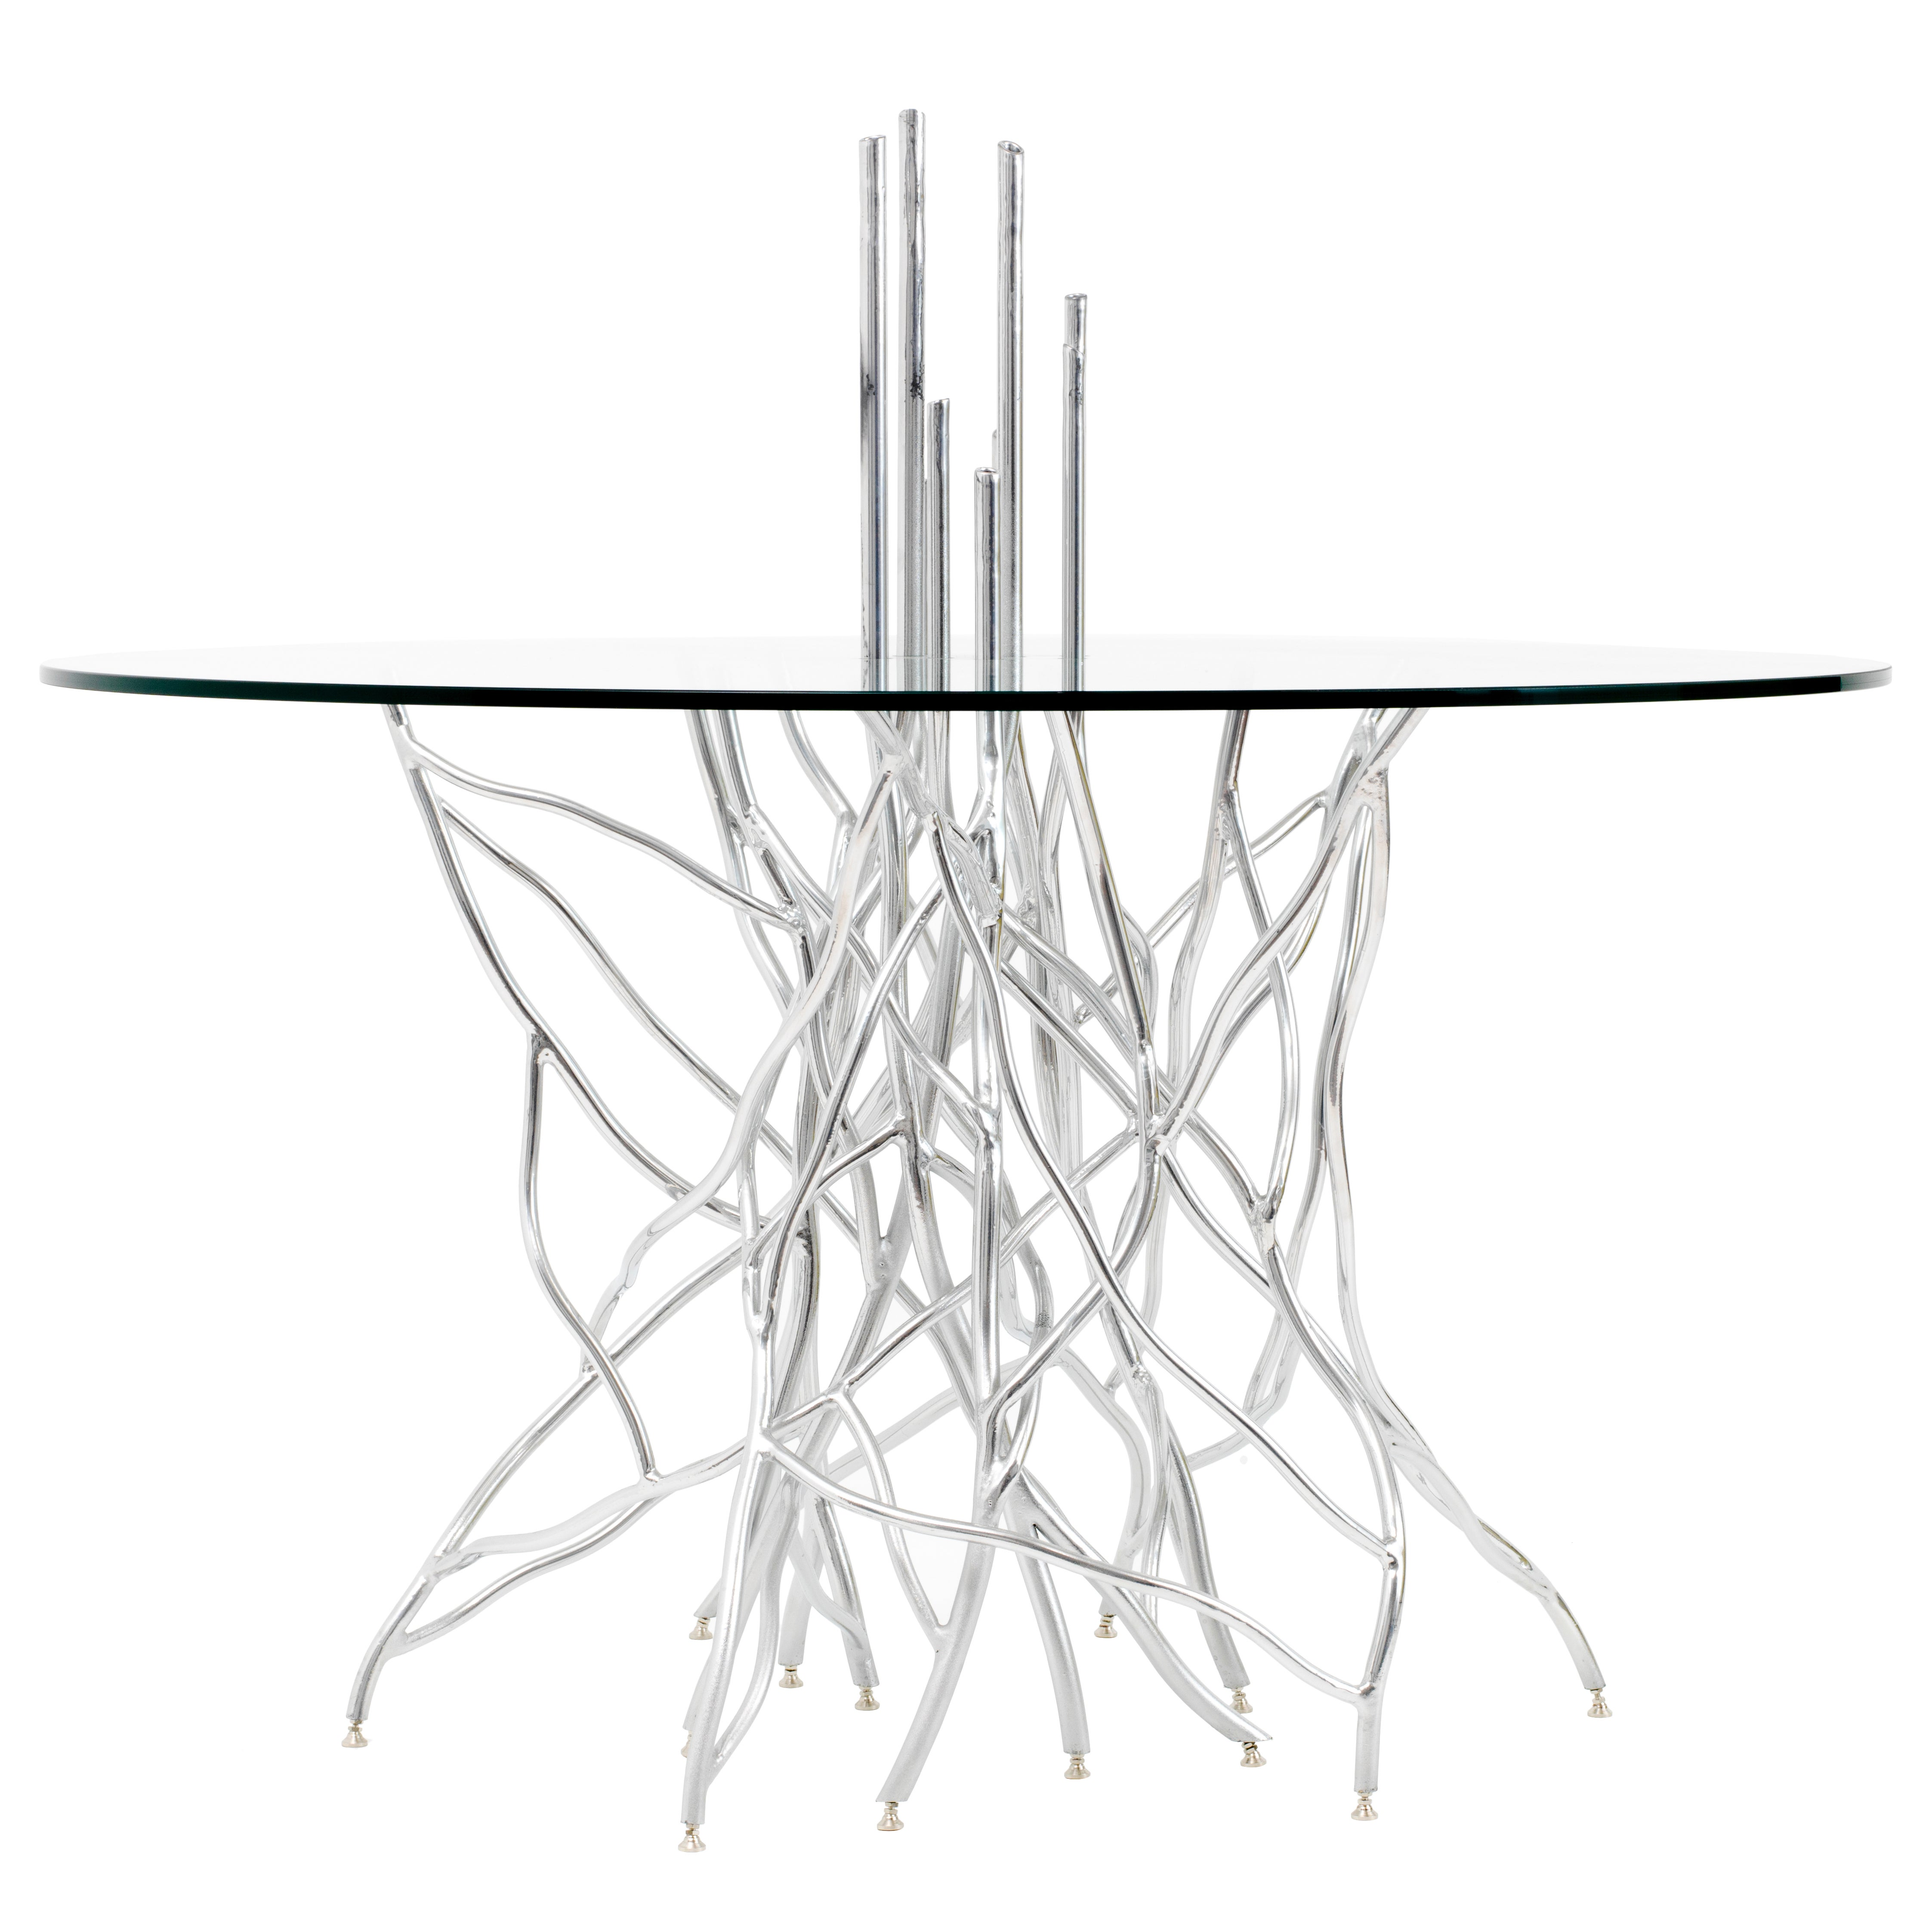 Torsion Dining Table - One-of-a-Kind Handcrafted by Mats Christeen